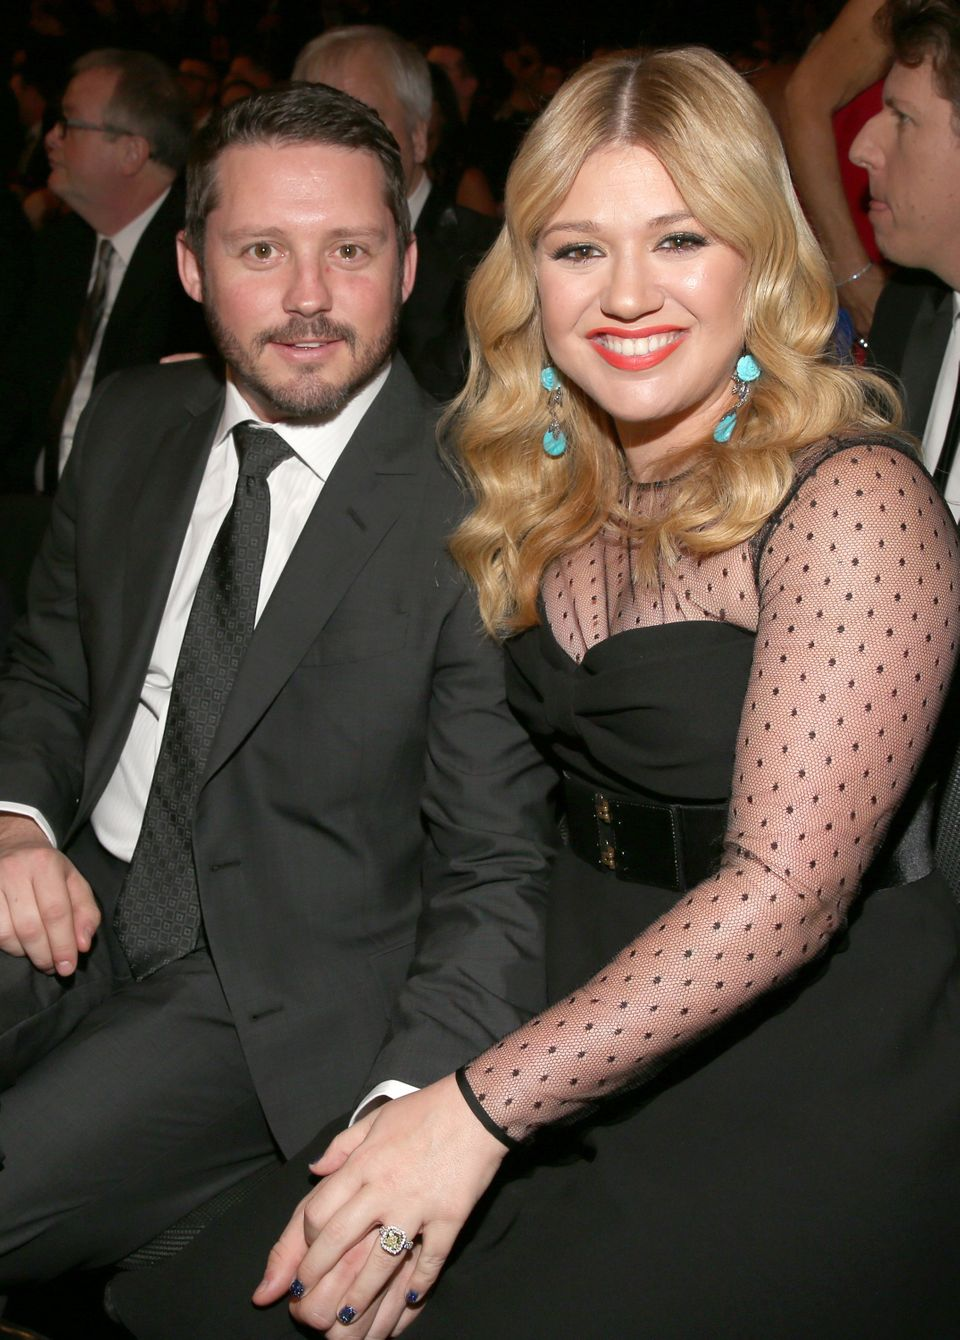 """Kelly Clarkson realized her <a href=""""http://stylenews.peoplestylewatch.com/2012/12/16/kelly-clarkson-engagement-ring/"""" target"""